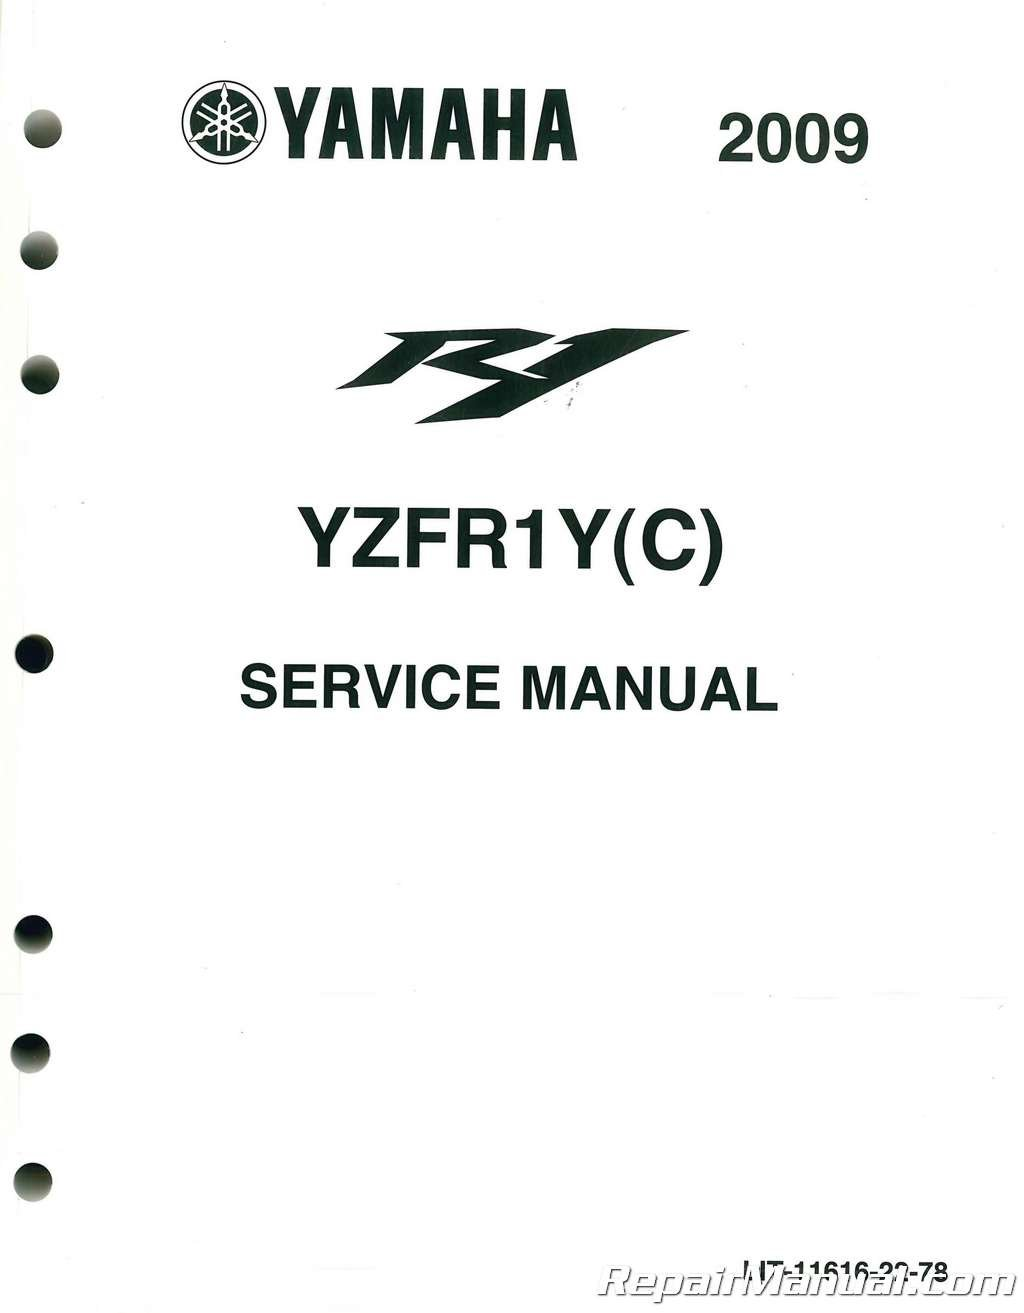 ULIT-11616-22-78 Used 2009-2011 Yamaha YZFR1 Motorcycle Printed Service Manual pdf epub